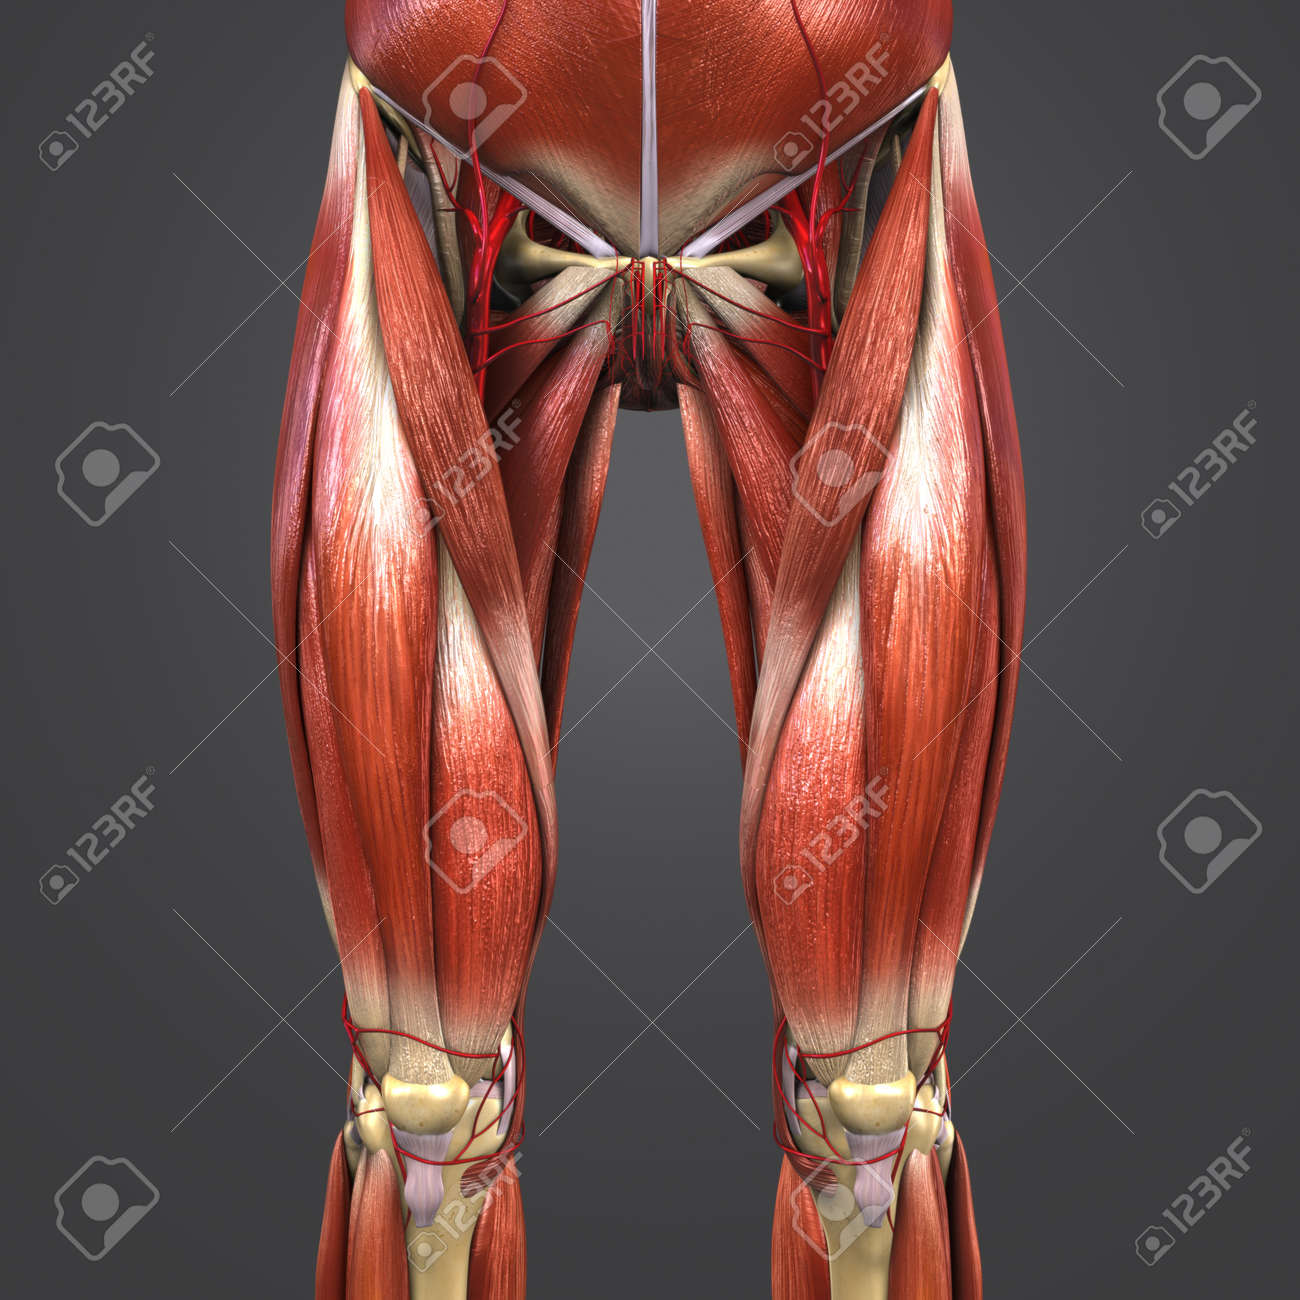 Muscles And Bones With Arteries Of Hip And Thigh Anterior View Stock